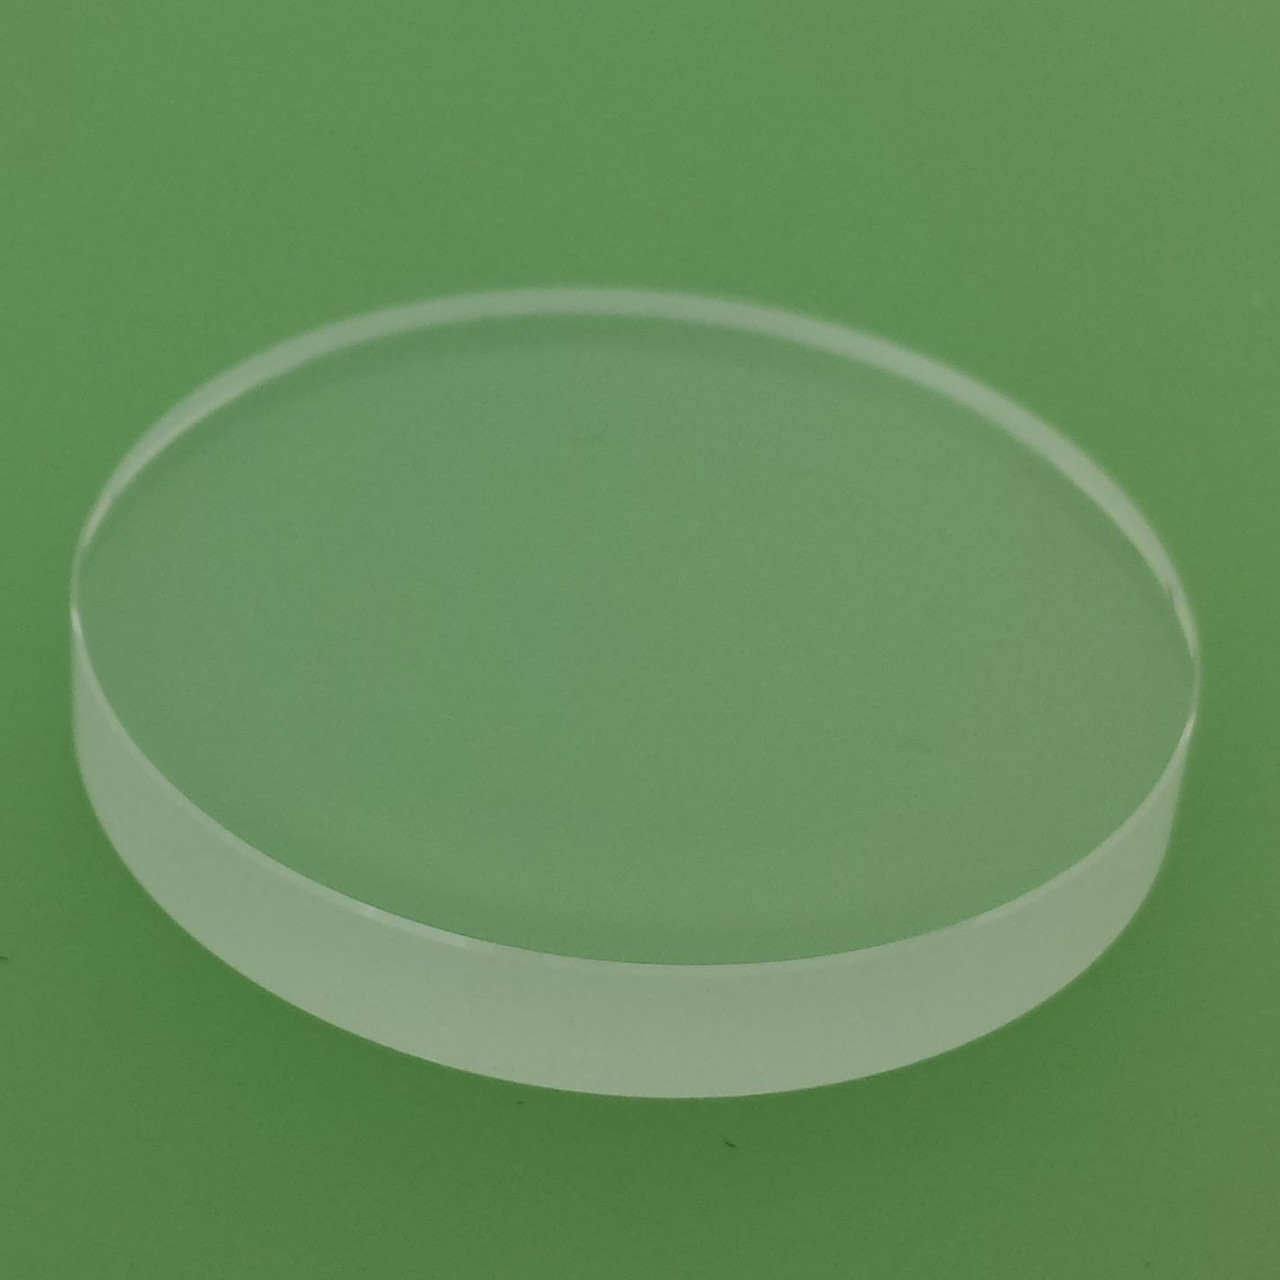 Sapphire Crystal to Fit Rolex DEEPSEA 116660 with Gasket